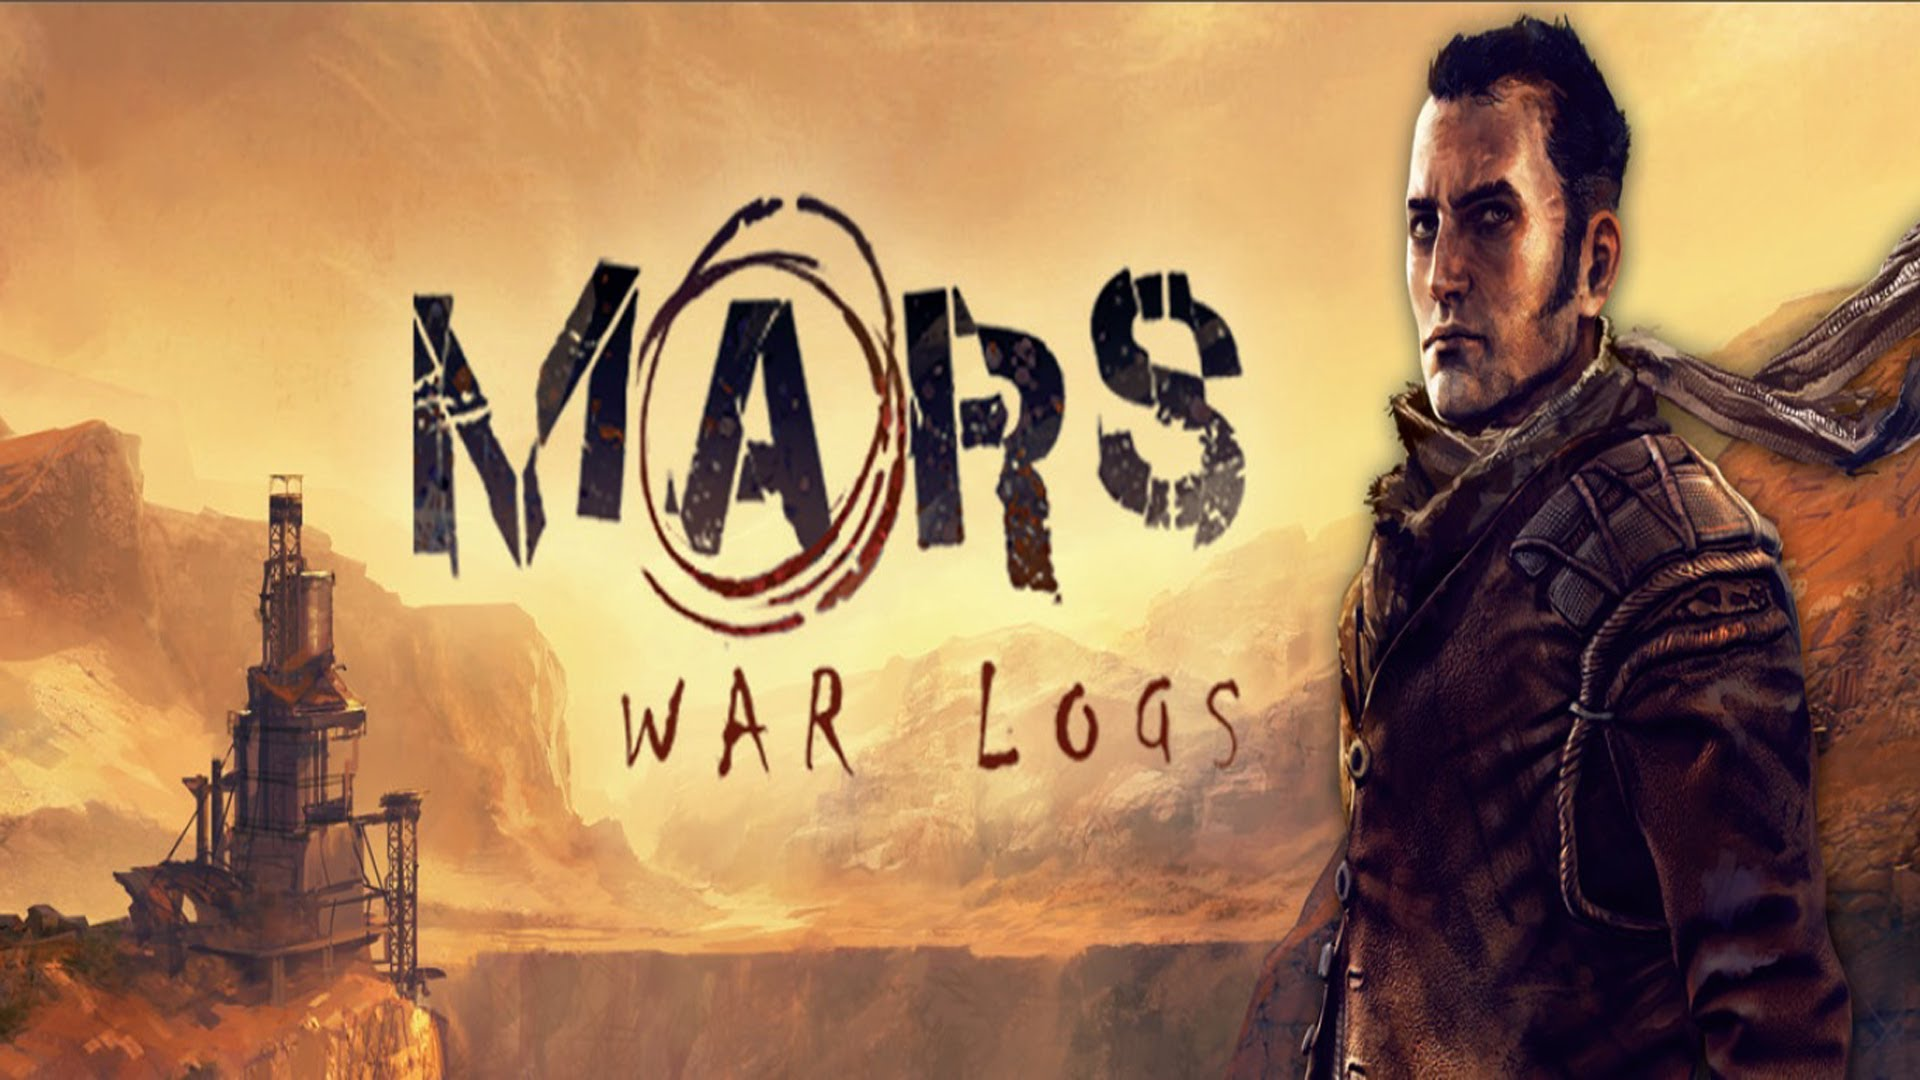 Mars War Logs PC Game Free Download 2.6GB